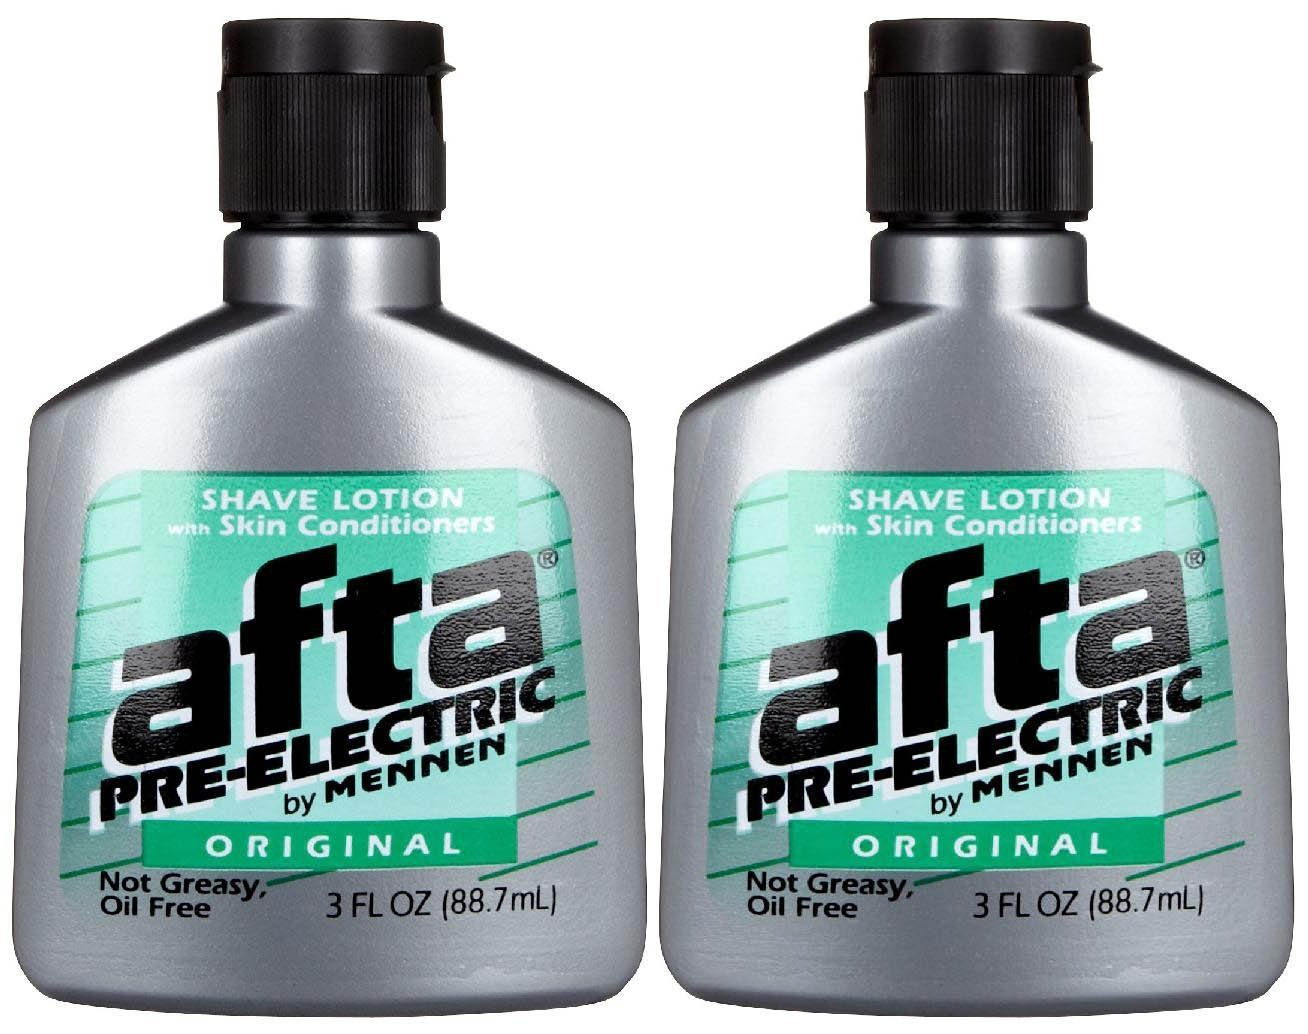 Mennen Afta Pre-Electric Shave Lotion, 3 Ounce (Pack of 2) Quidsi ACP-188B